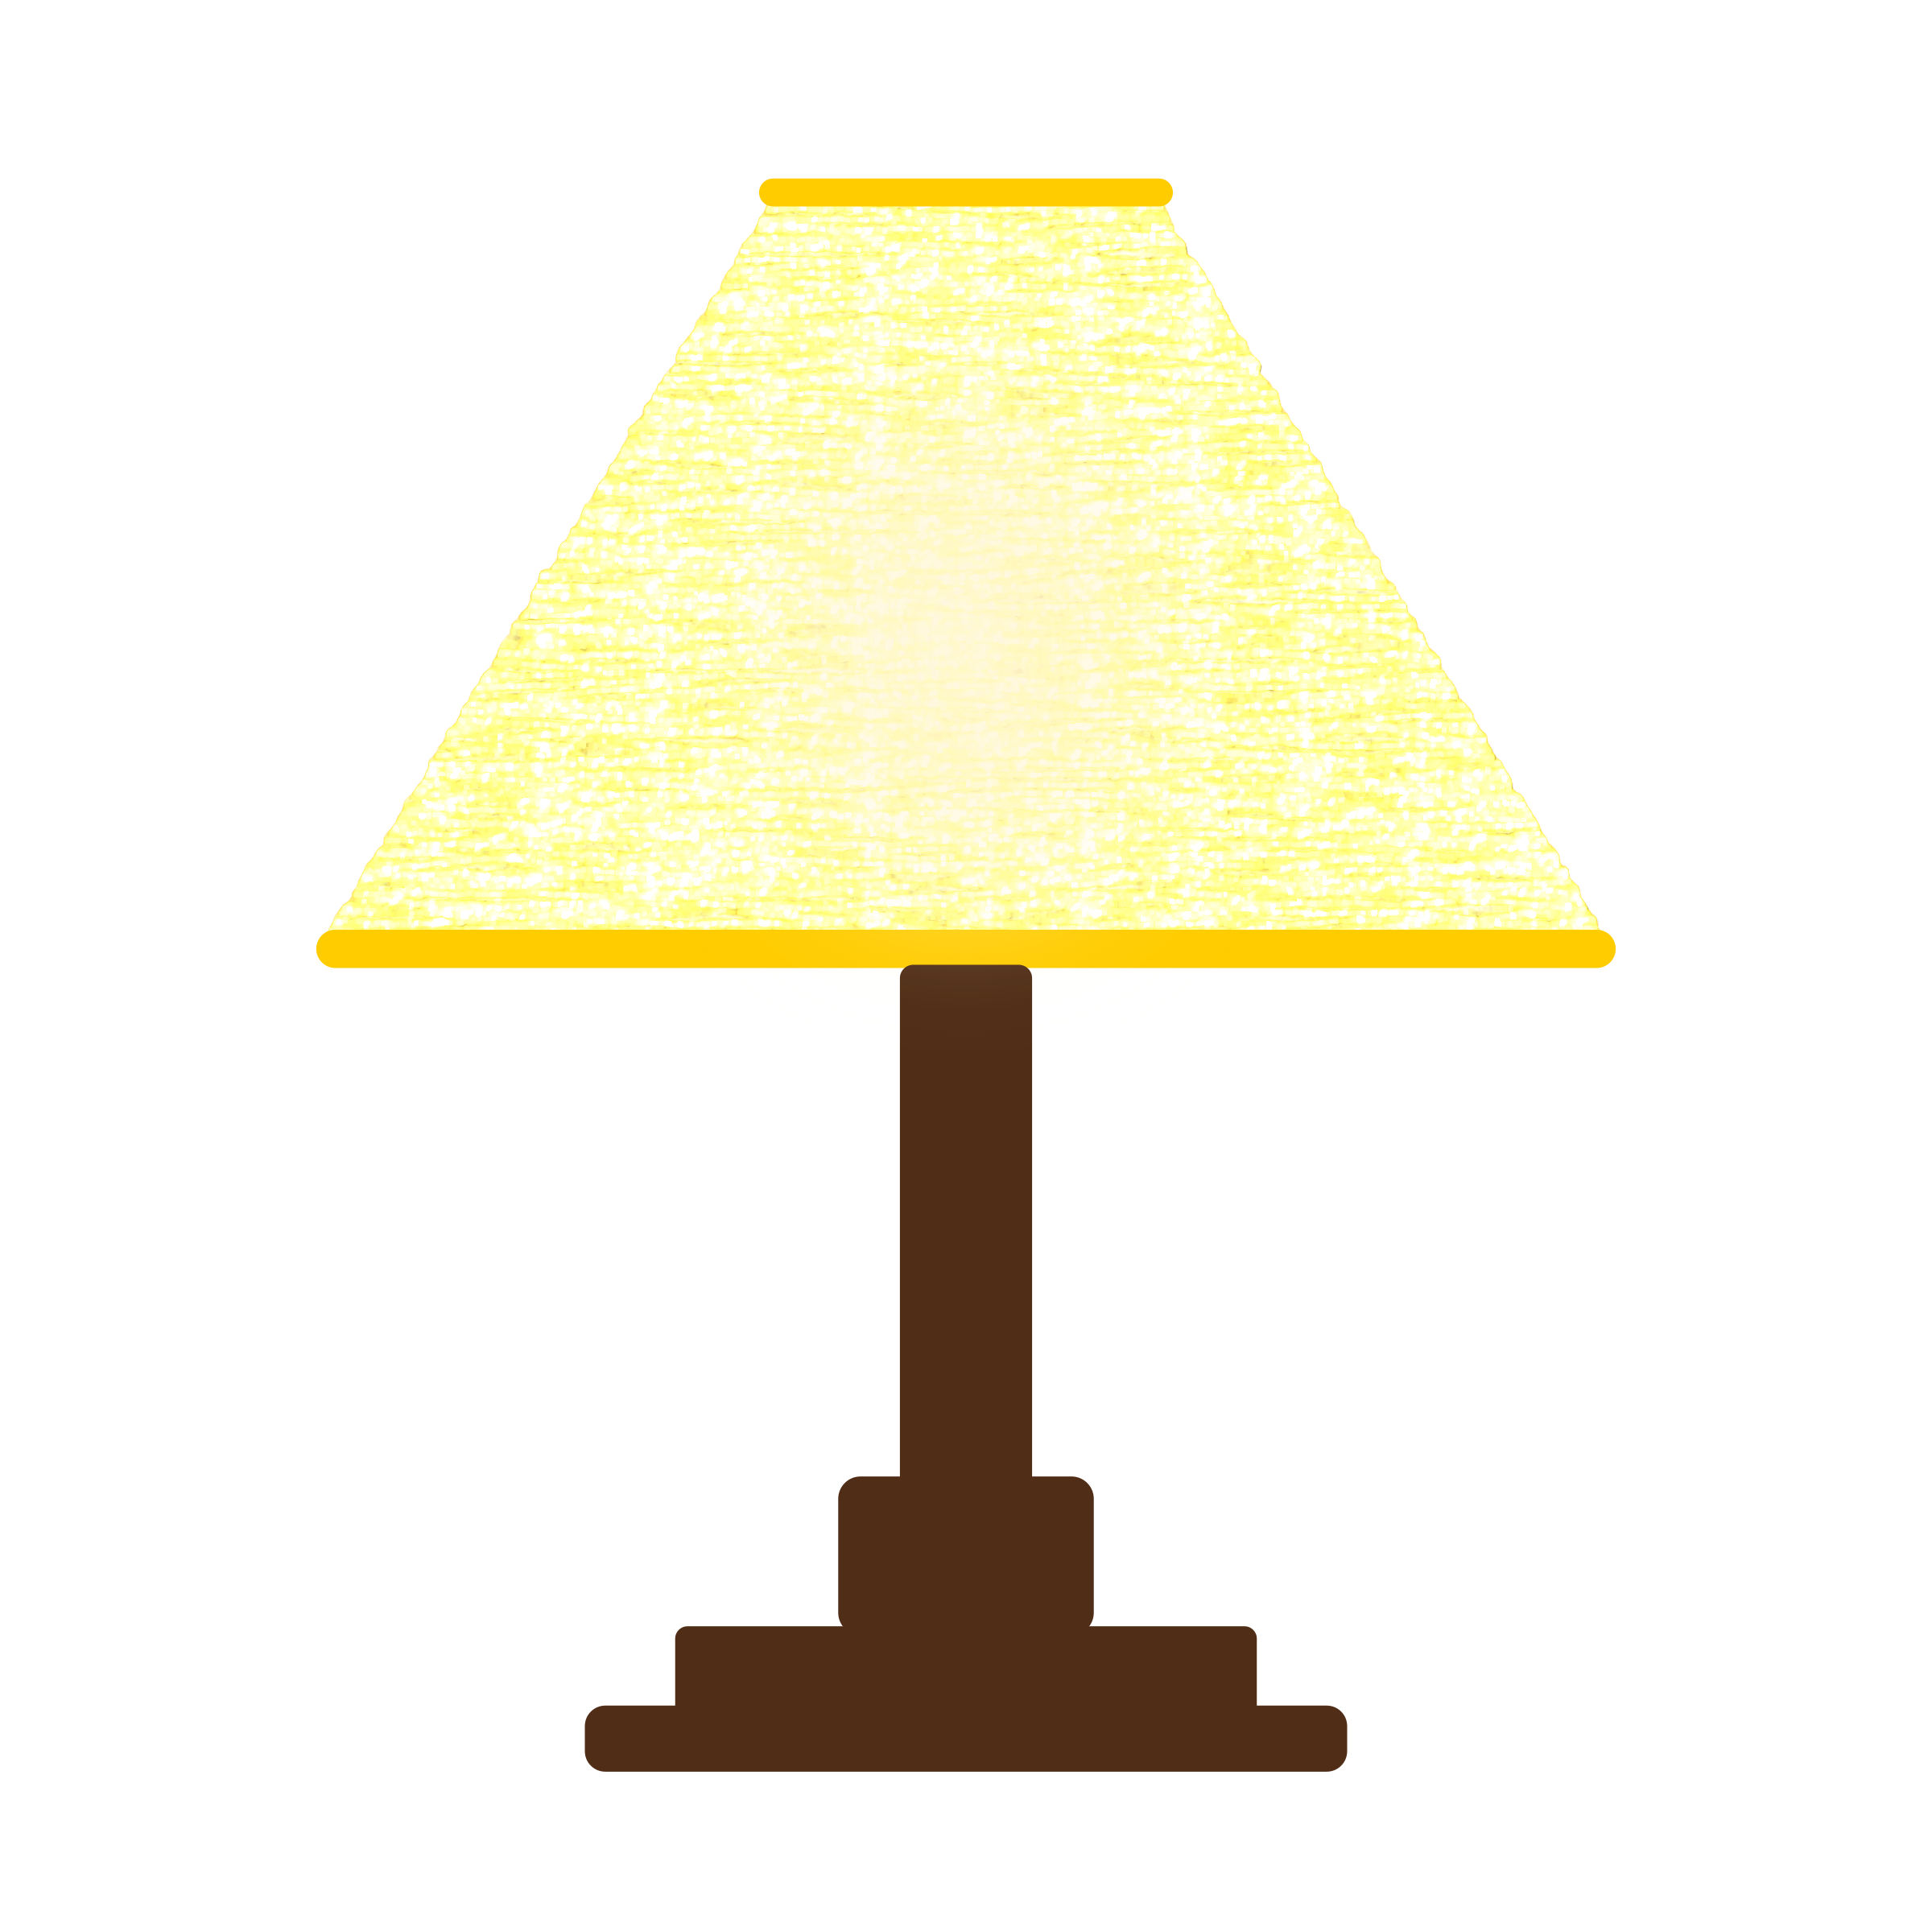 Colored Lamp Shades clipart - yellow lamp shade-simple-three-color